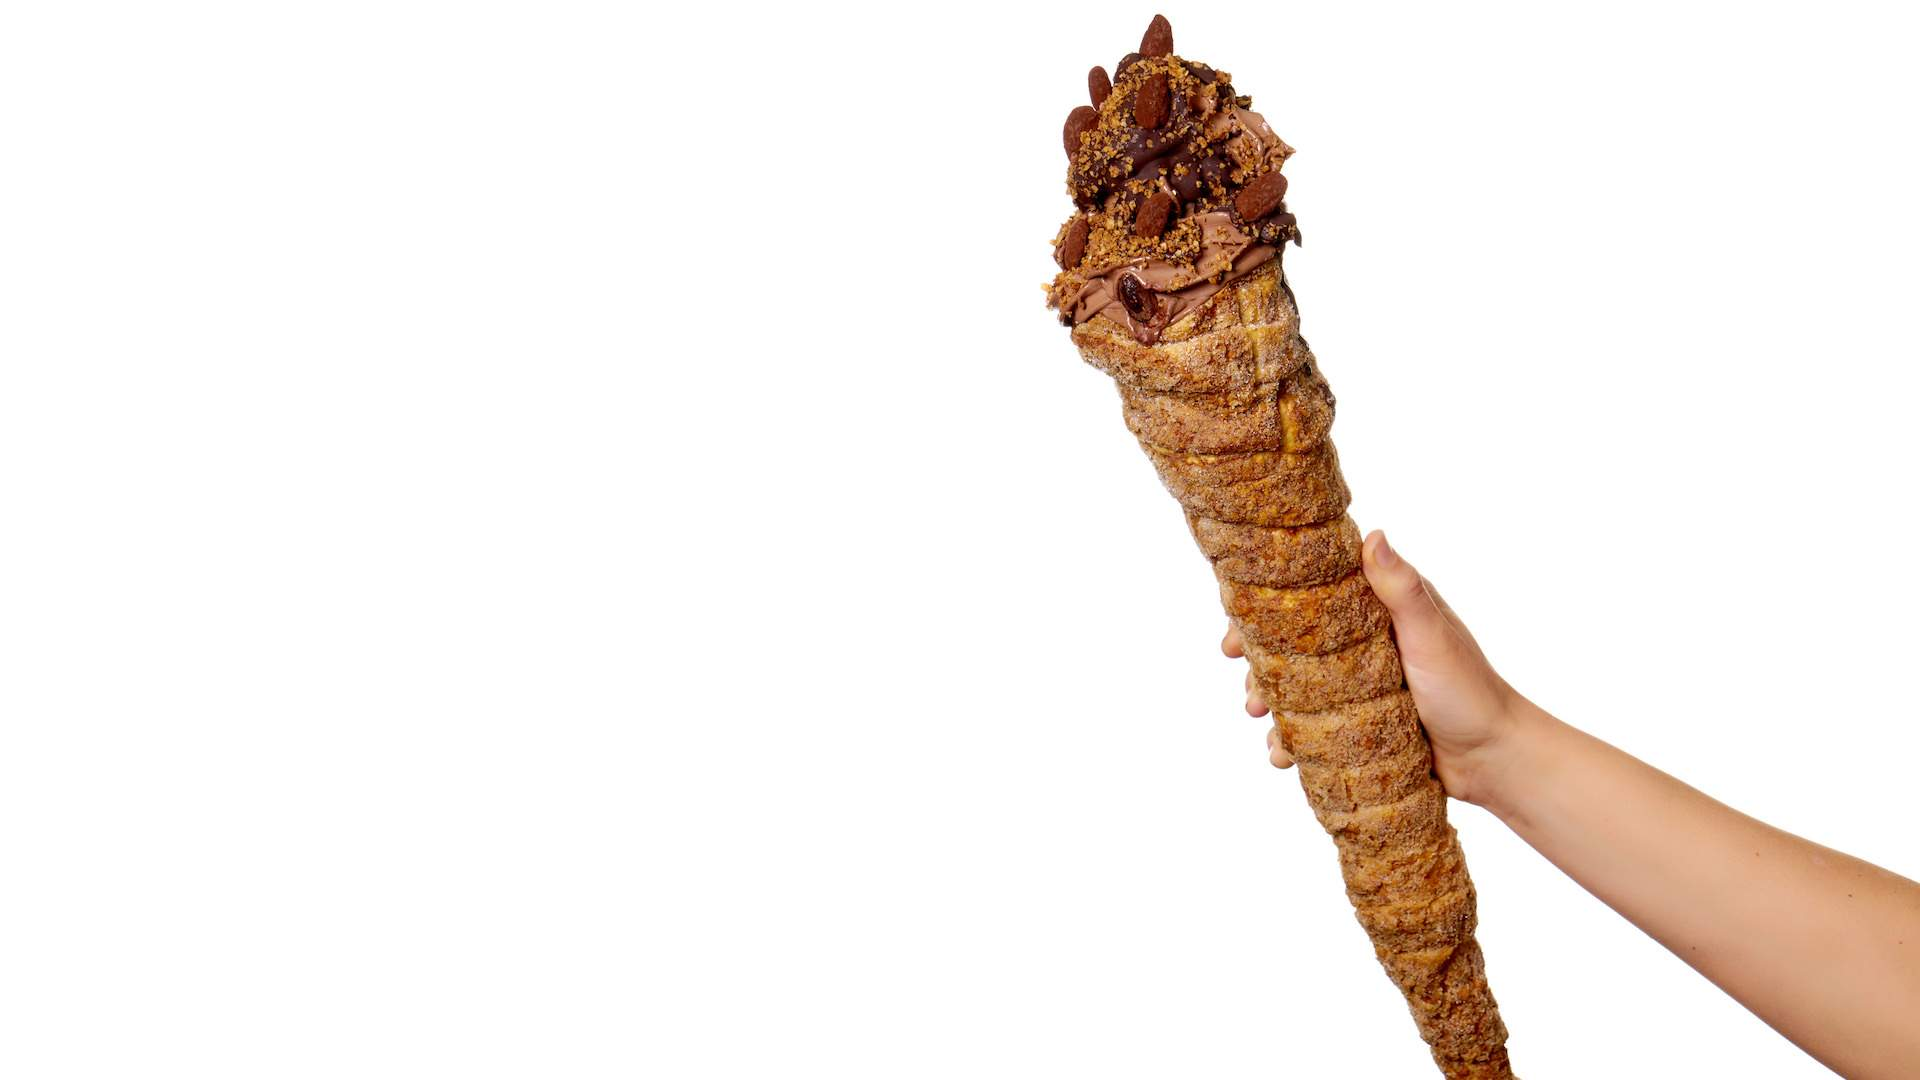 Giapo Is Now Serving a Massive 60-Centimetre-Tall Ice Cream Cone